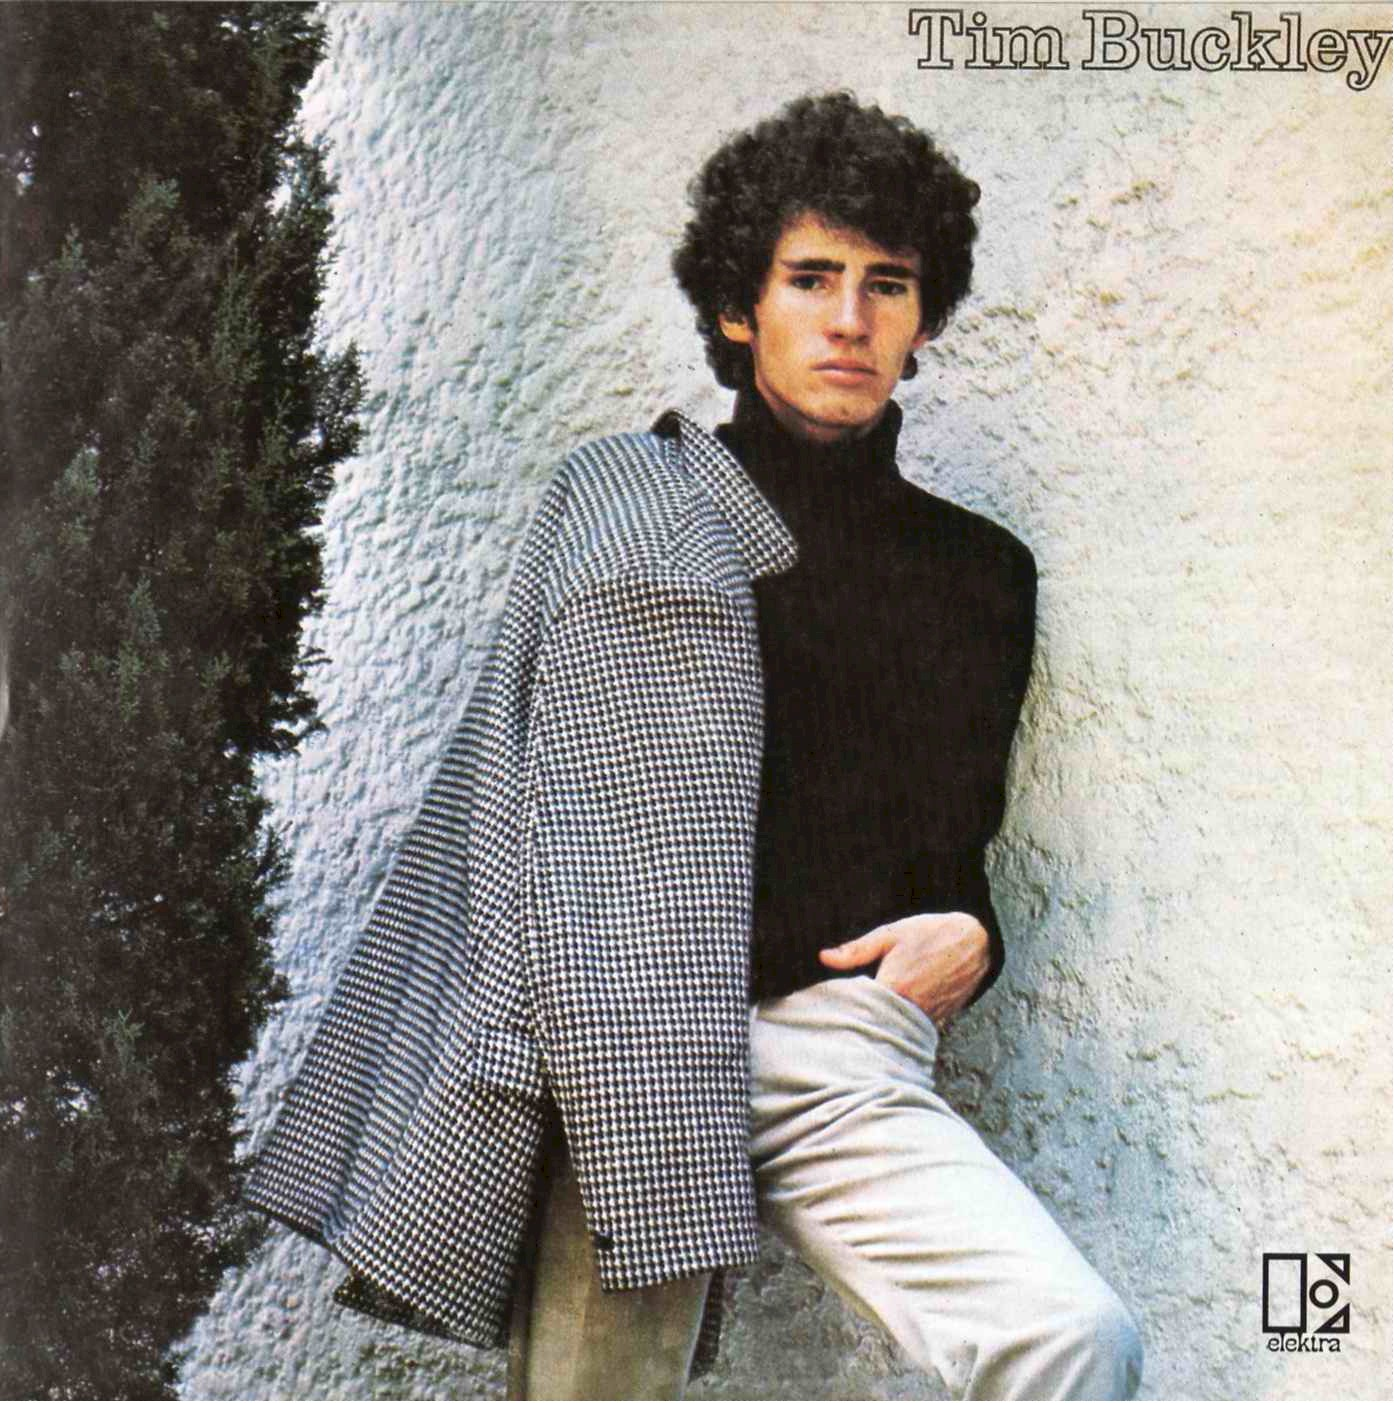 Tim buckley lp 68